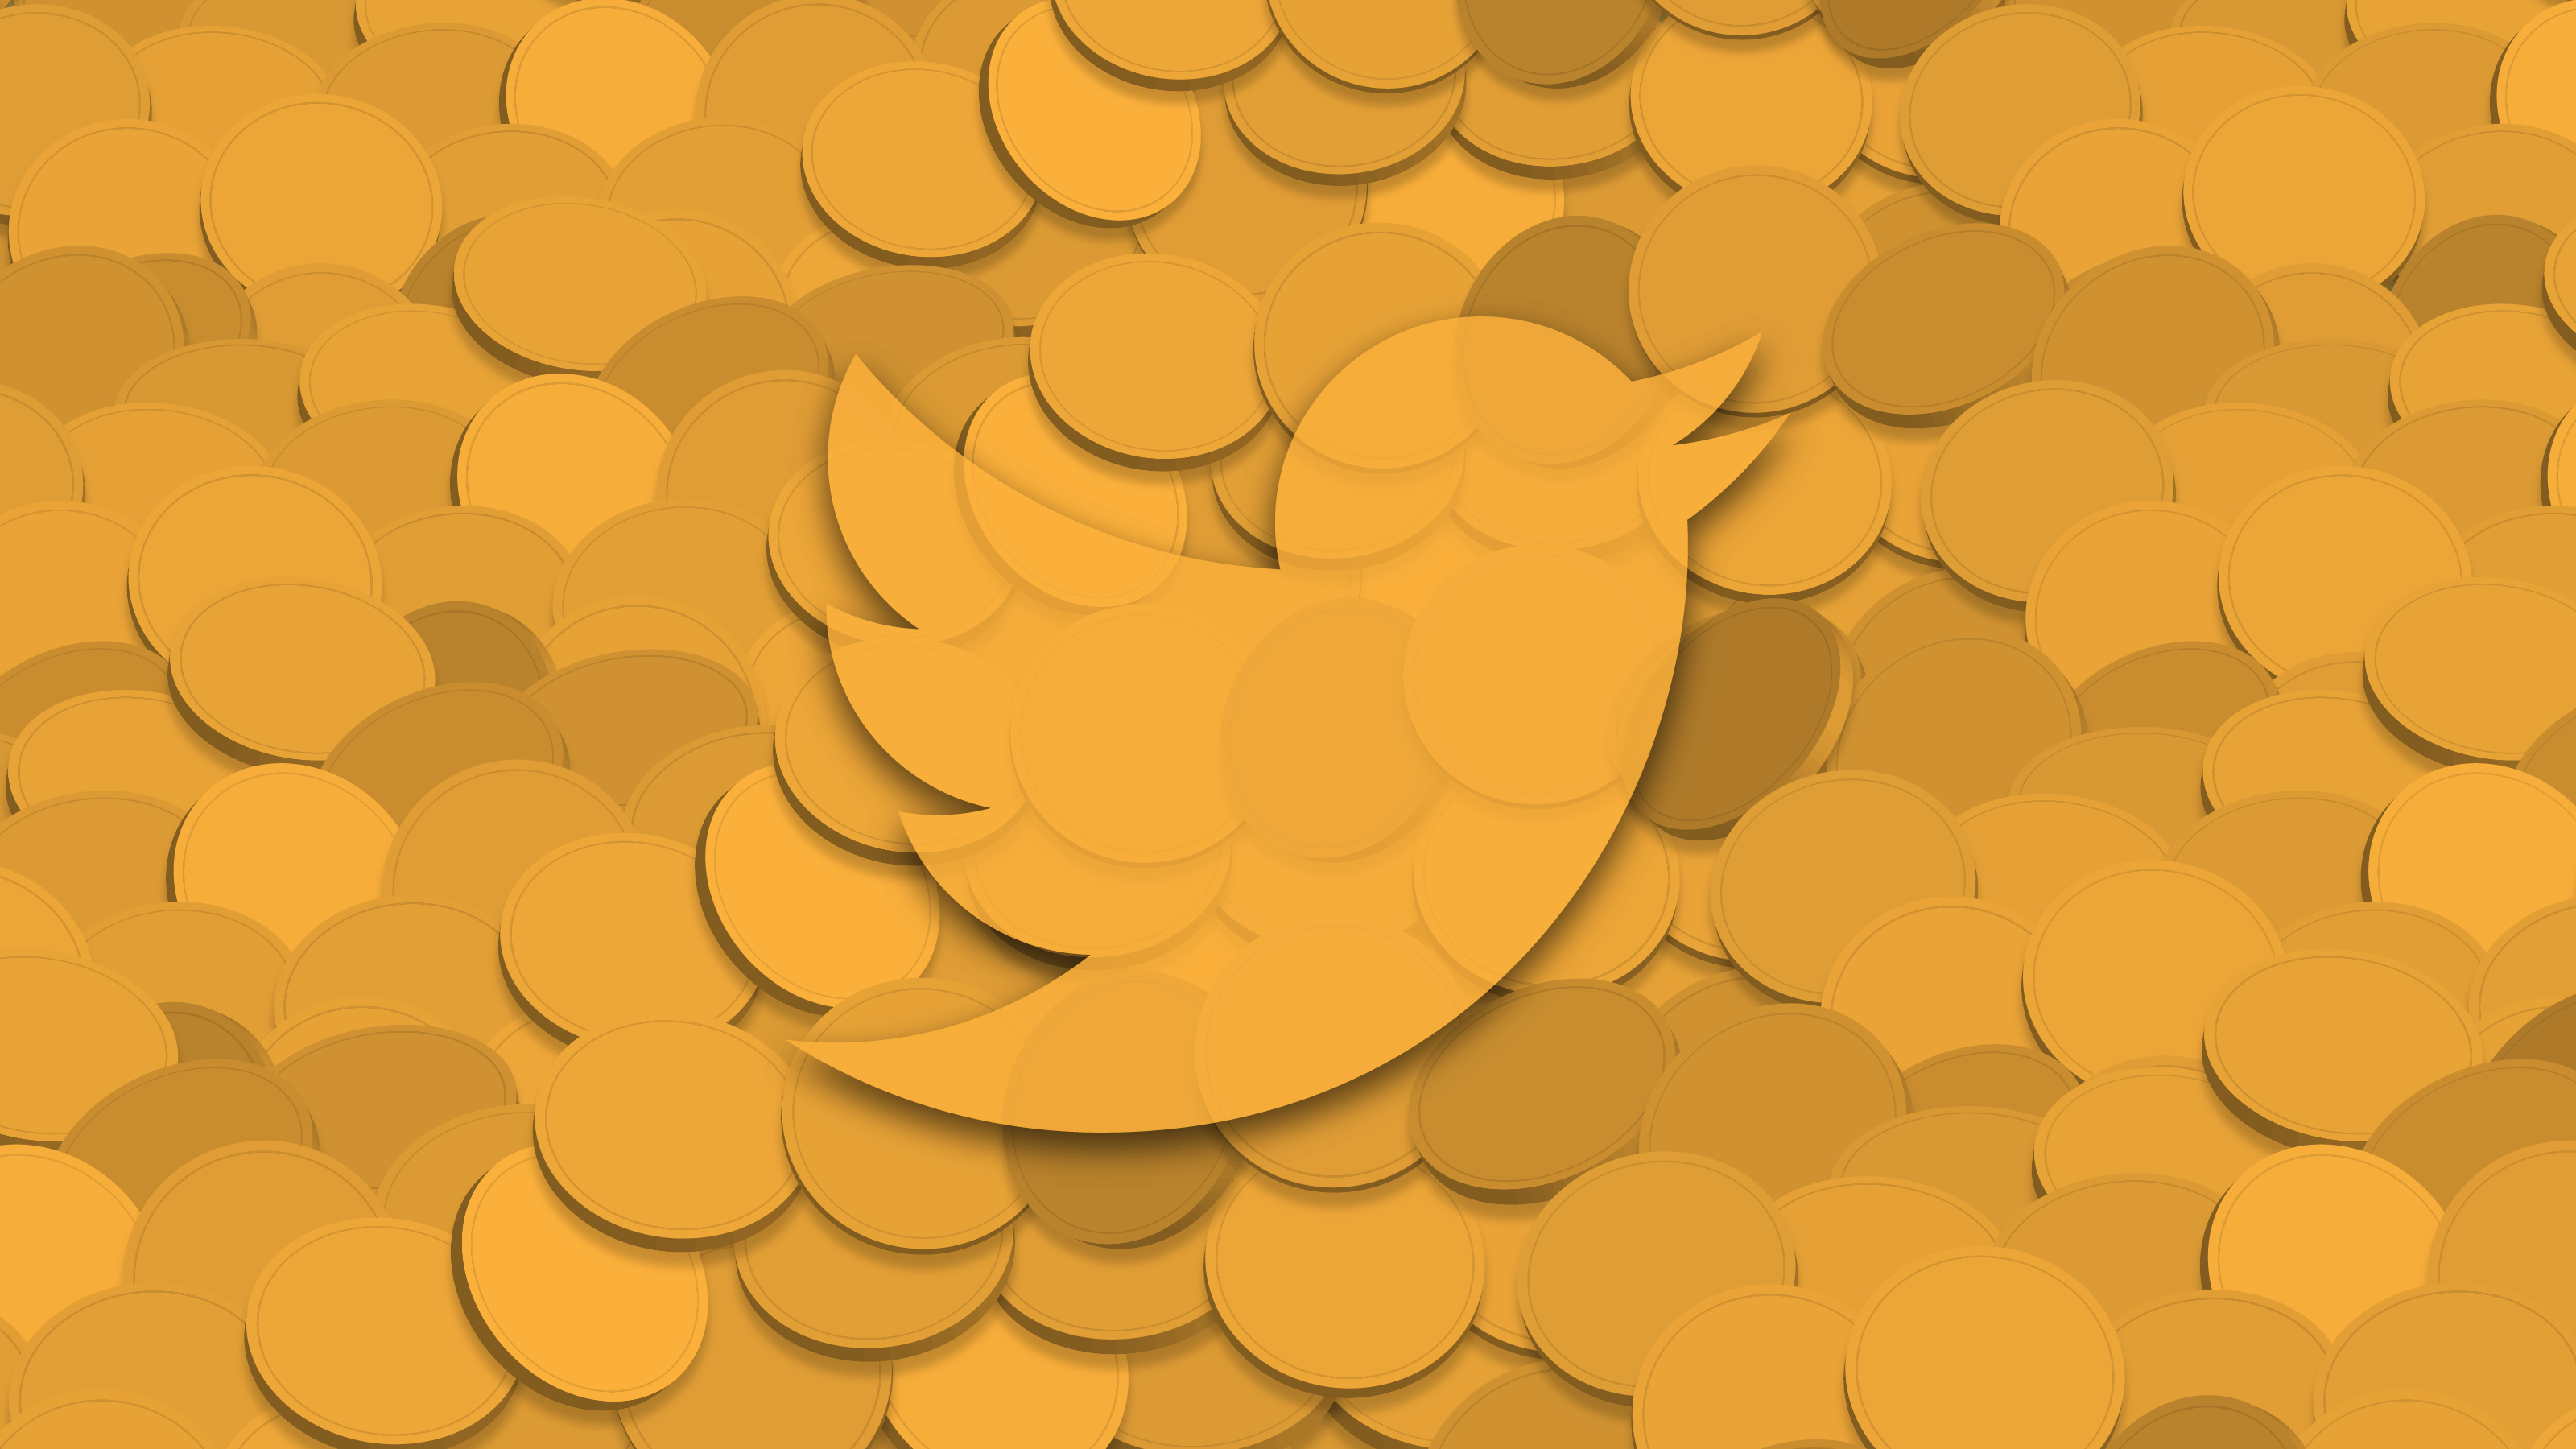 Twitter Will Start Banning Cryptocurrency Ads From Today